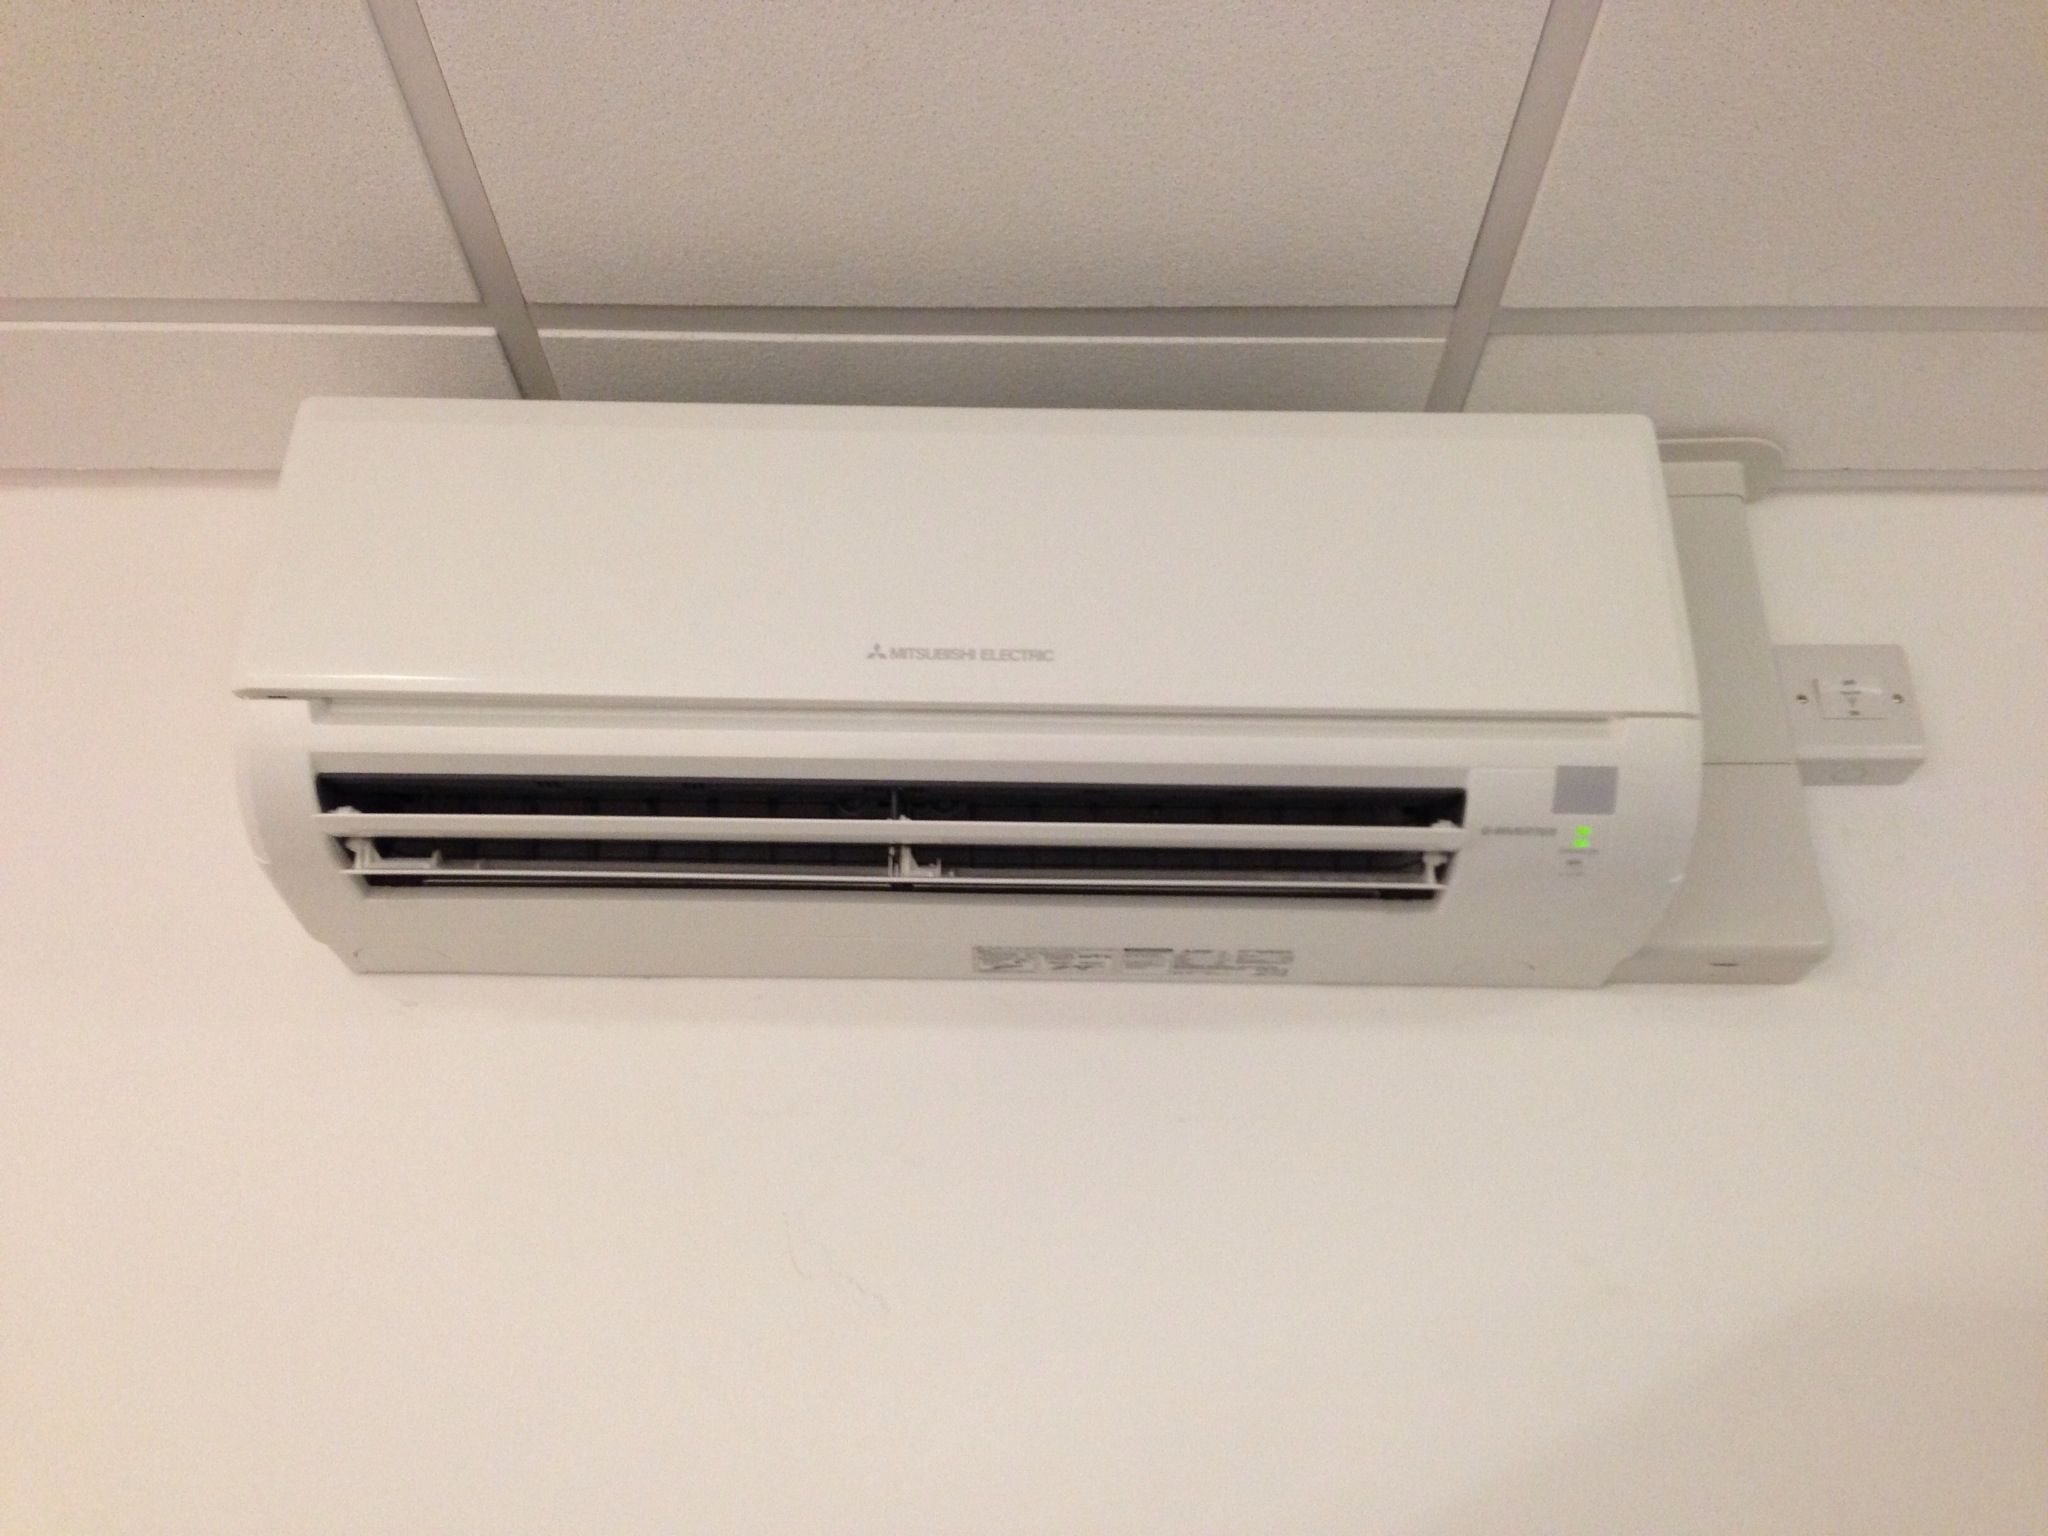 Mitsubishi Electric MSZGE50 wall mounted air conditioning